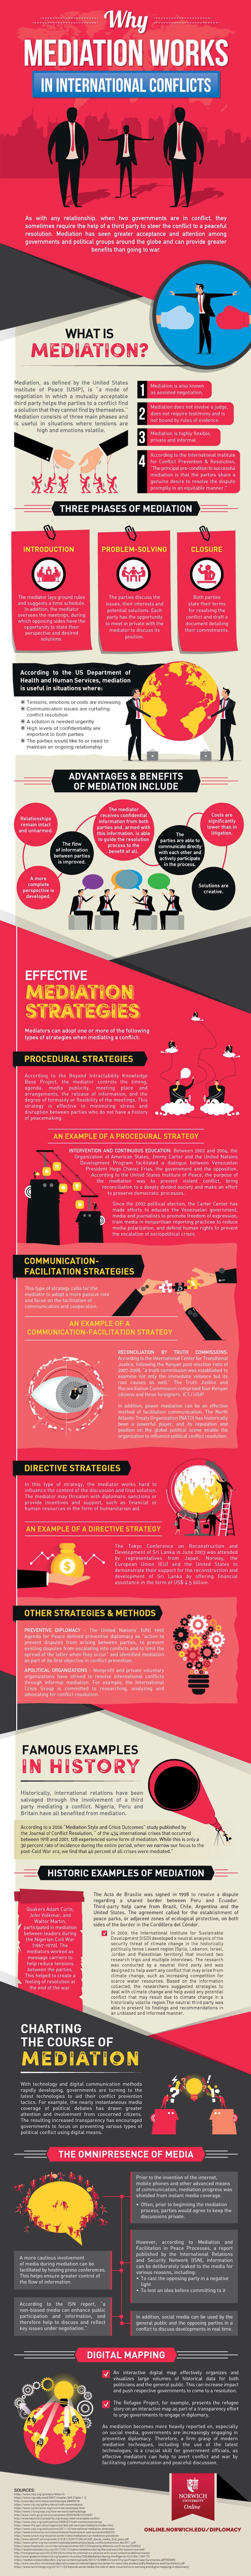 infographic on mediation tactics for international conflicts